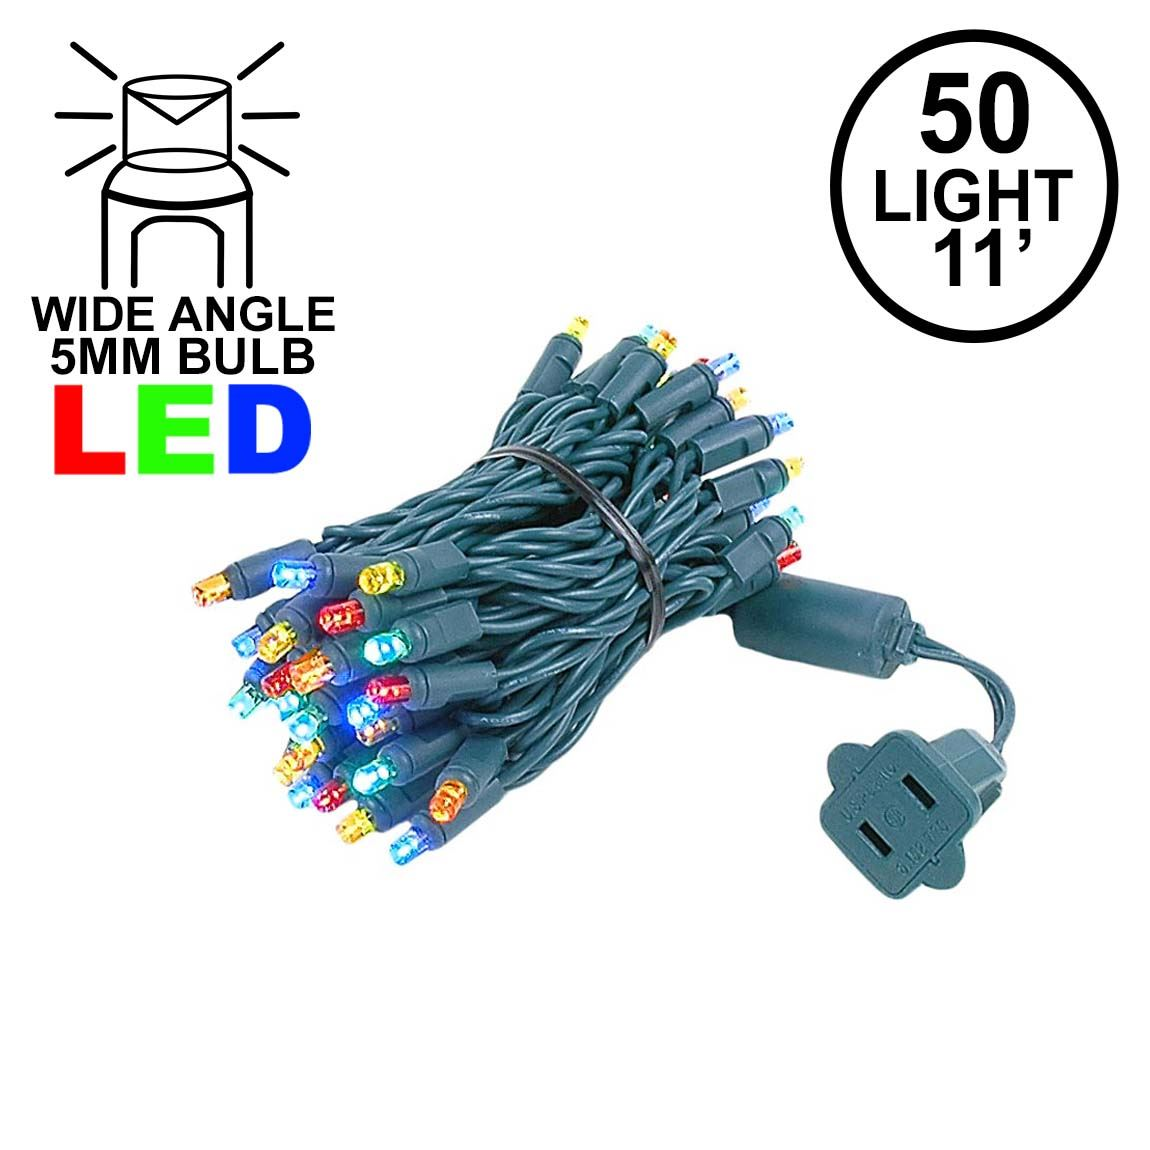 Picture of 50 LED Multi LED Christmas Lights 11' Long on Green Wire